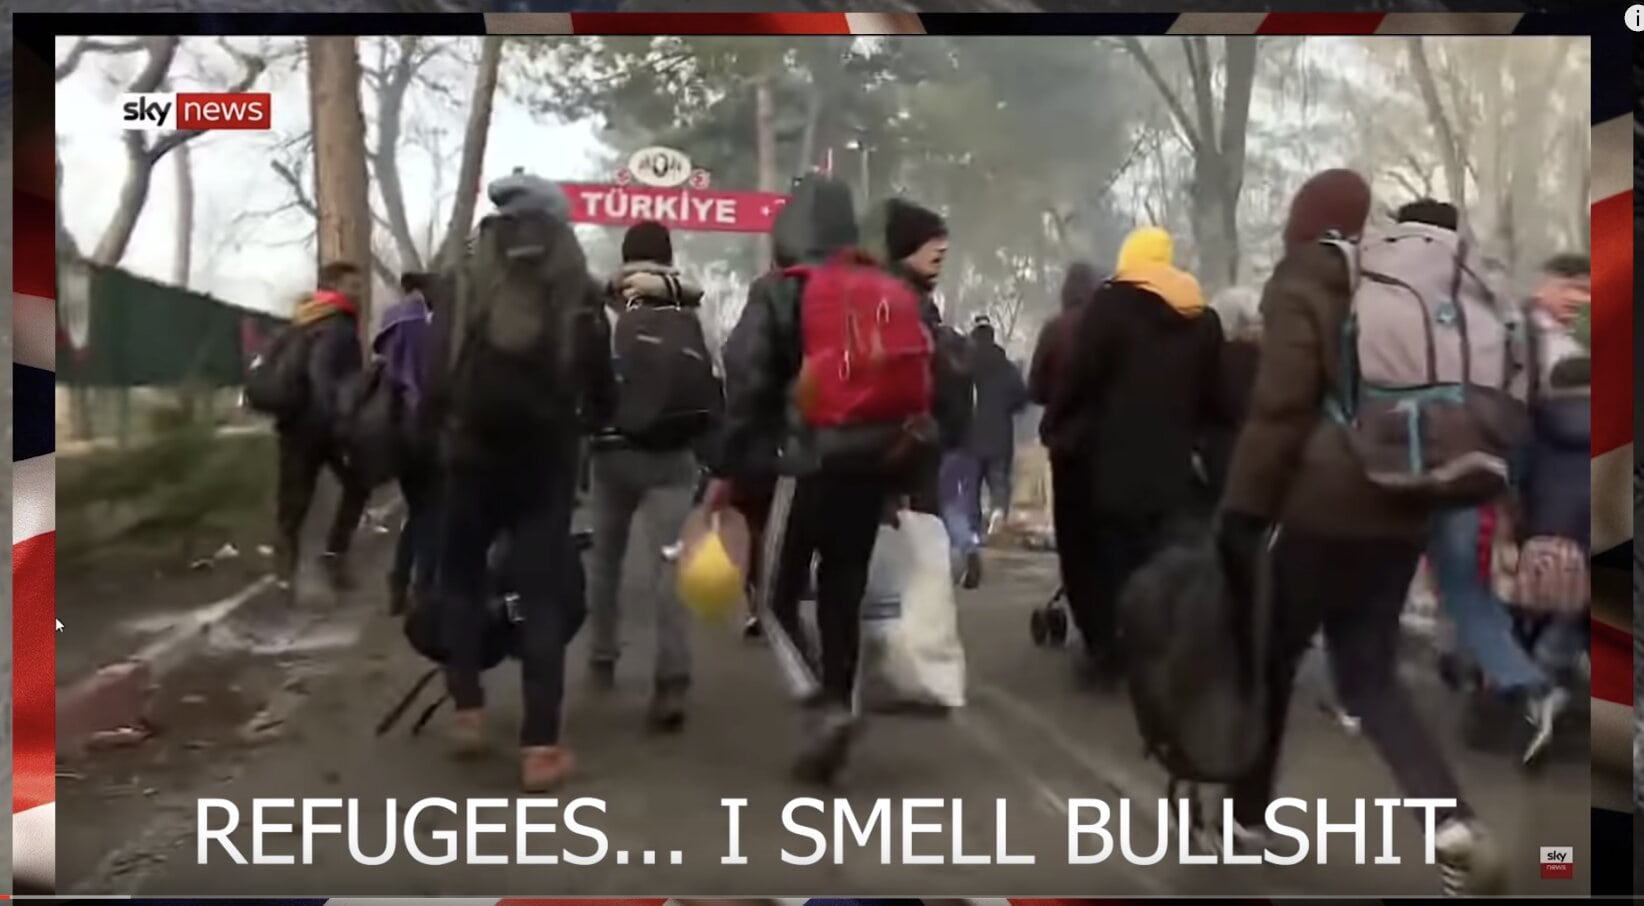 Economic Migrants Sent Packing By Greek Border Guards, Sky News Calls Them Refugees Obviously